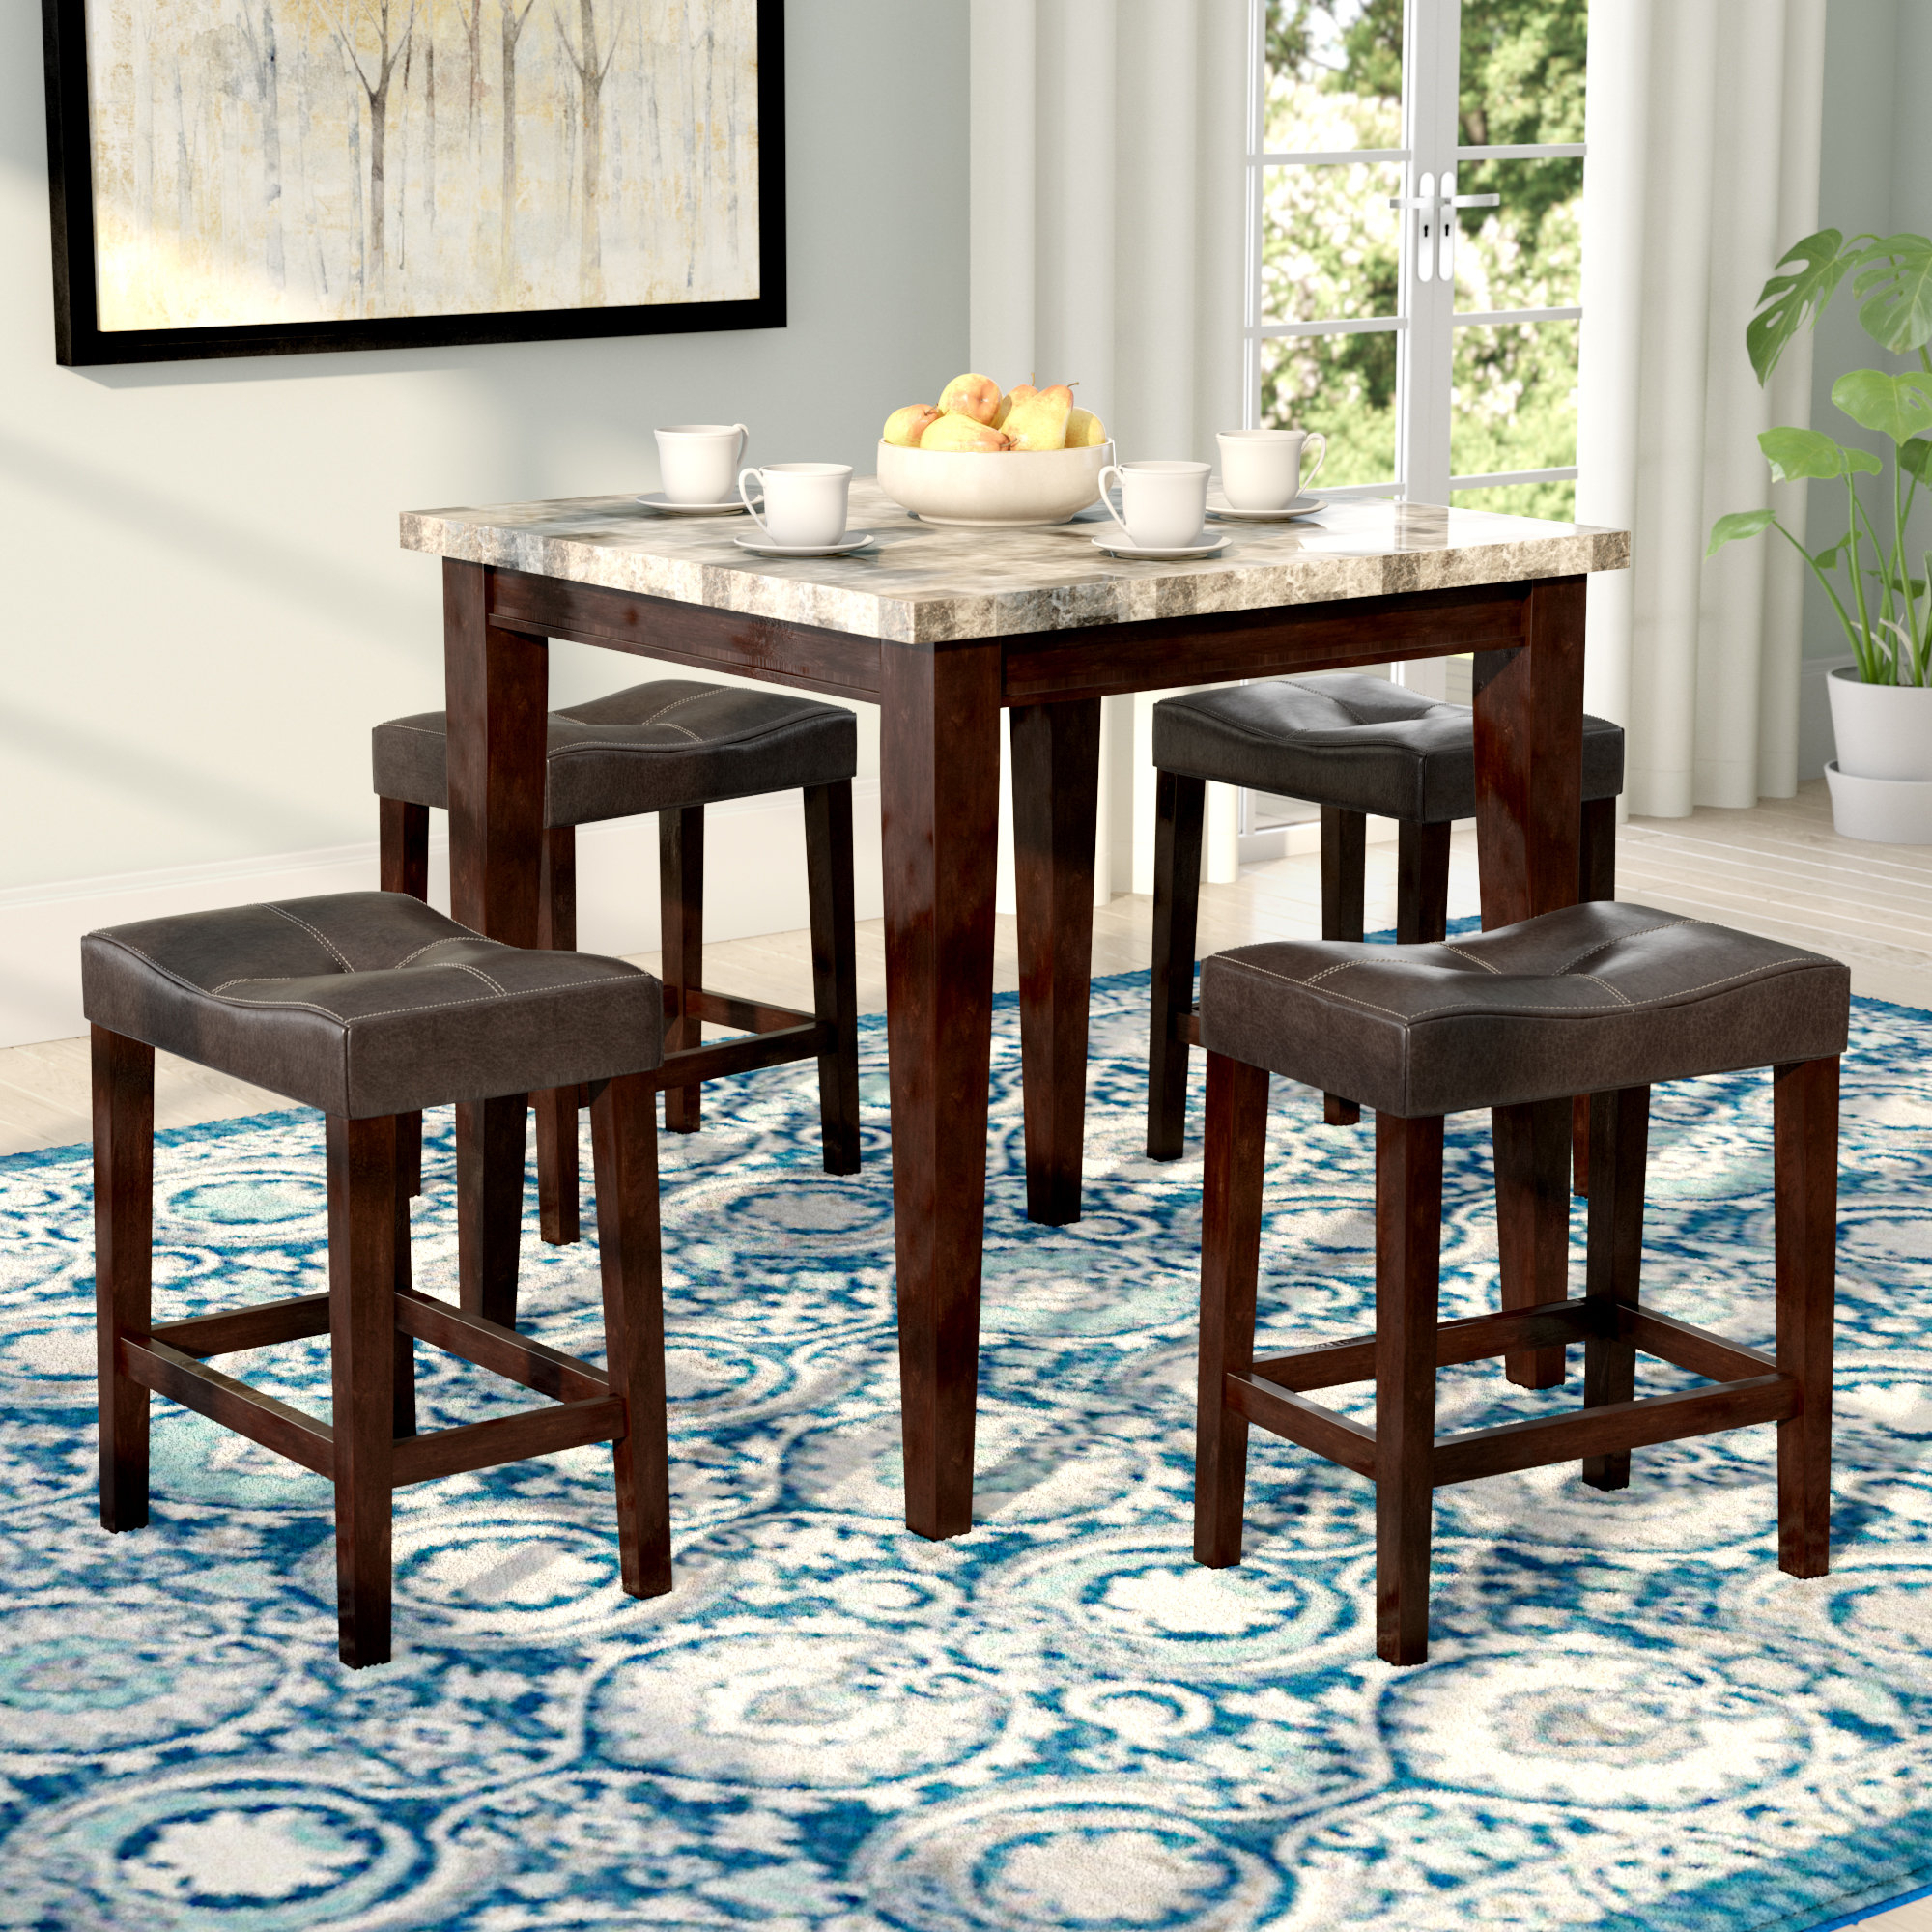 Miskell 5 Piece Dining Sets Pertaining To Most Current Andover Mills Aldama 5 Piece Pub Table Set & Reviews (View 25 of 25)